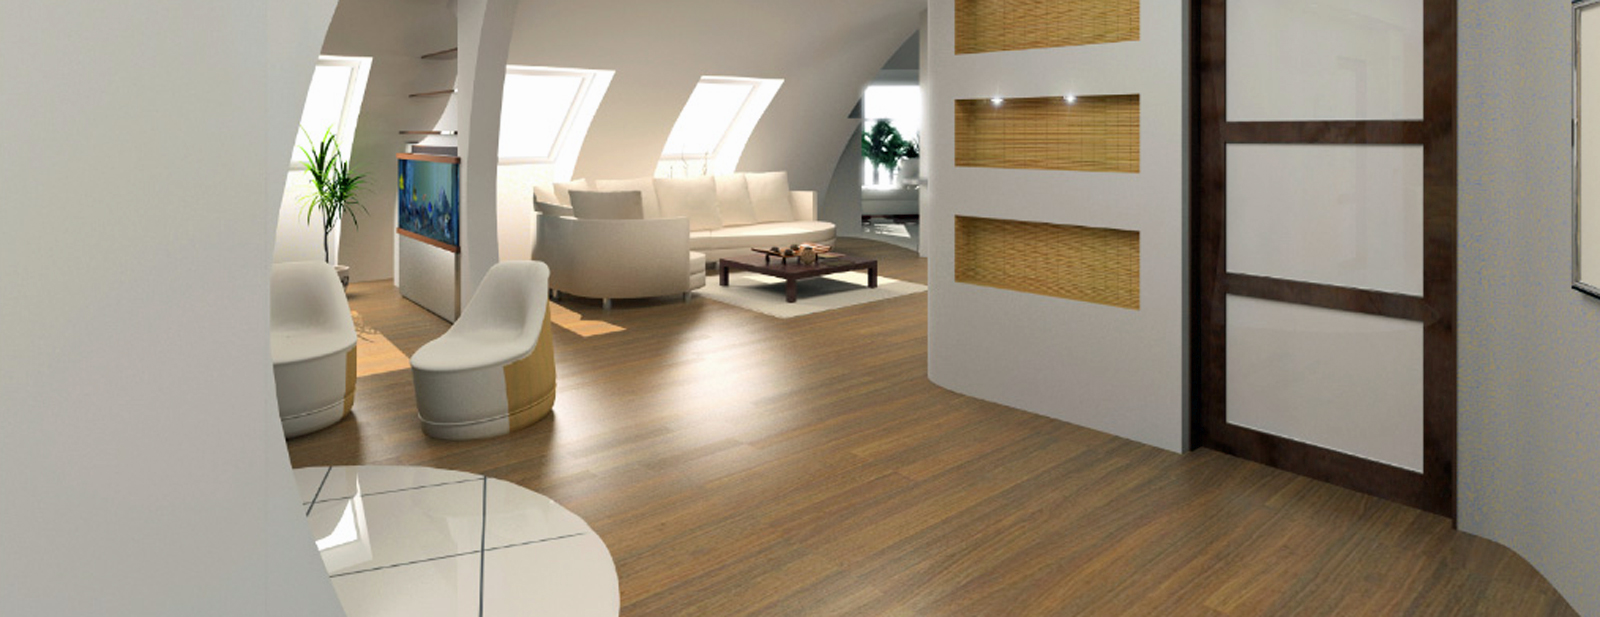 Laminate Flooring Experts Installers Choose The Best Wood Plank Floor Floorsbay Inc Proudly Serving Leesburg Va Area Since 2006